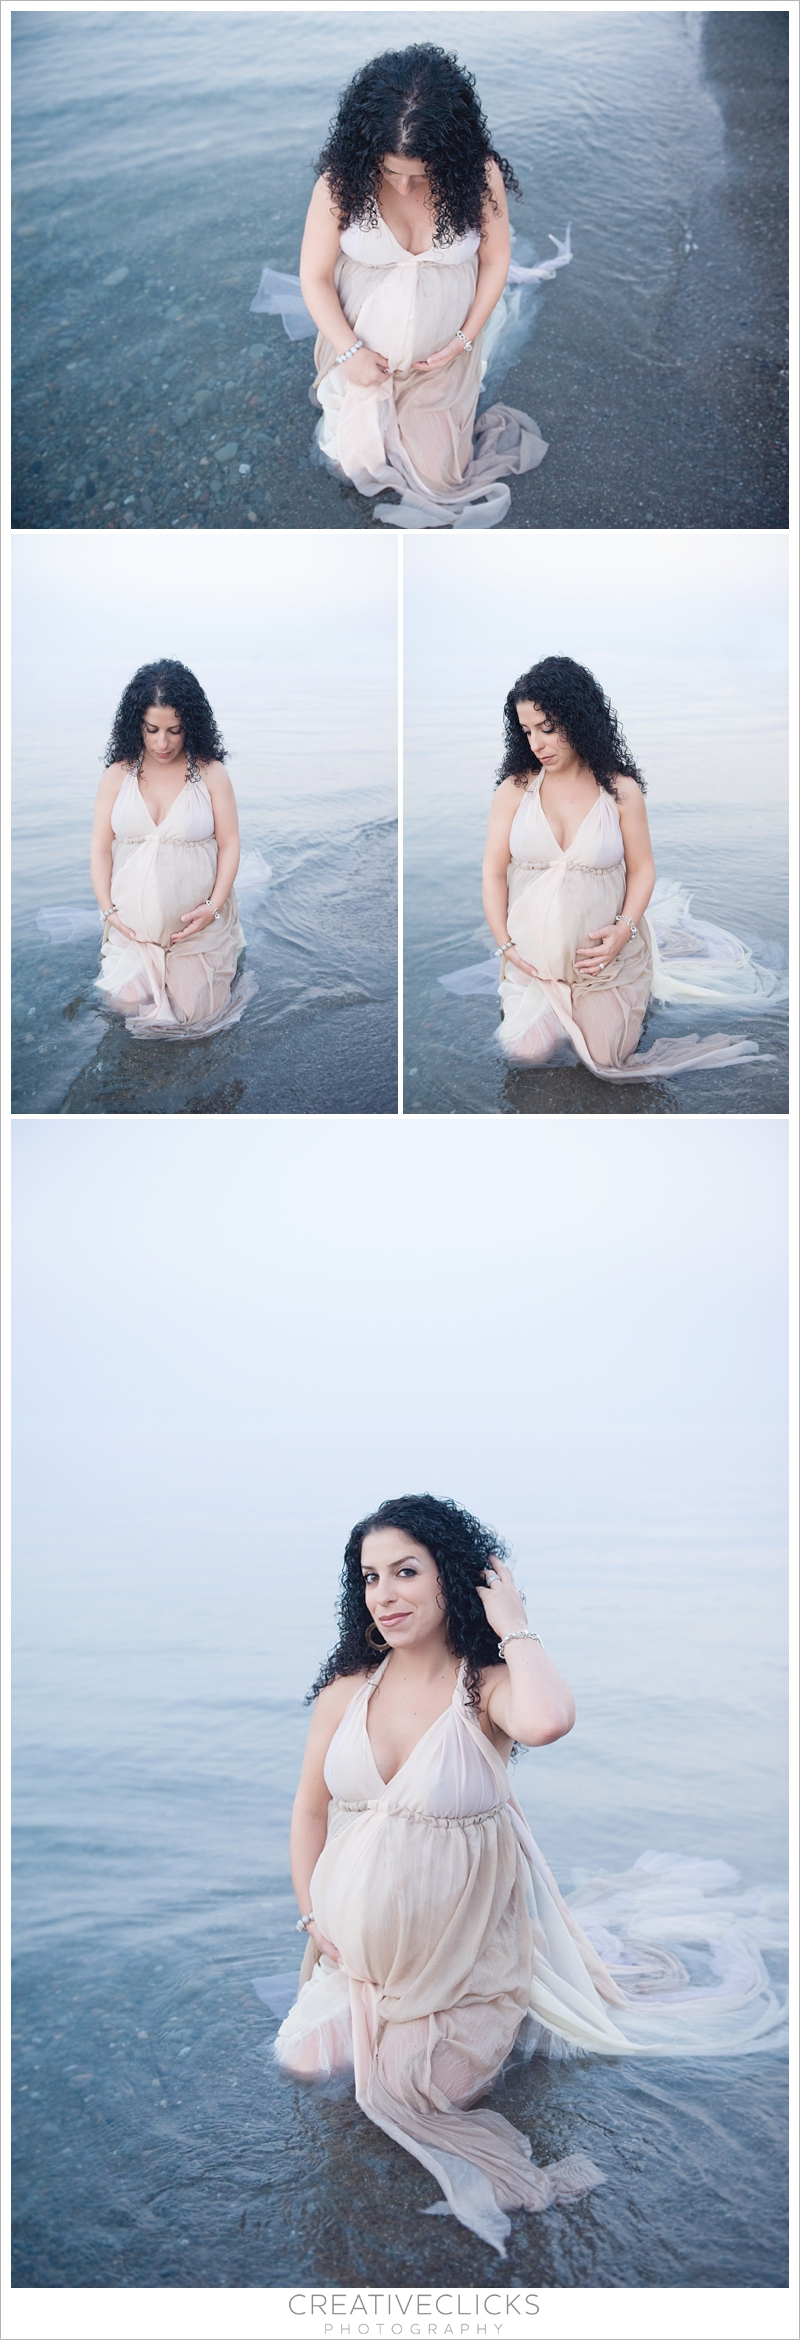 Dreamy Maternity Photography on the Beach